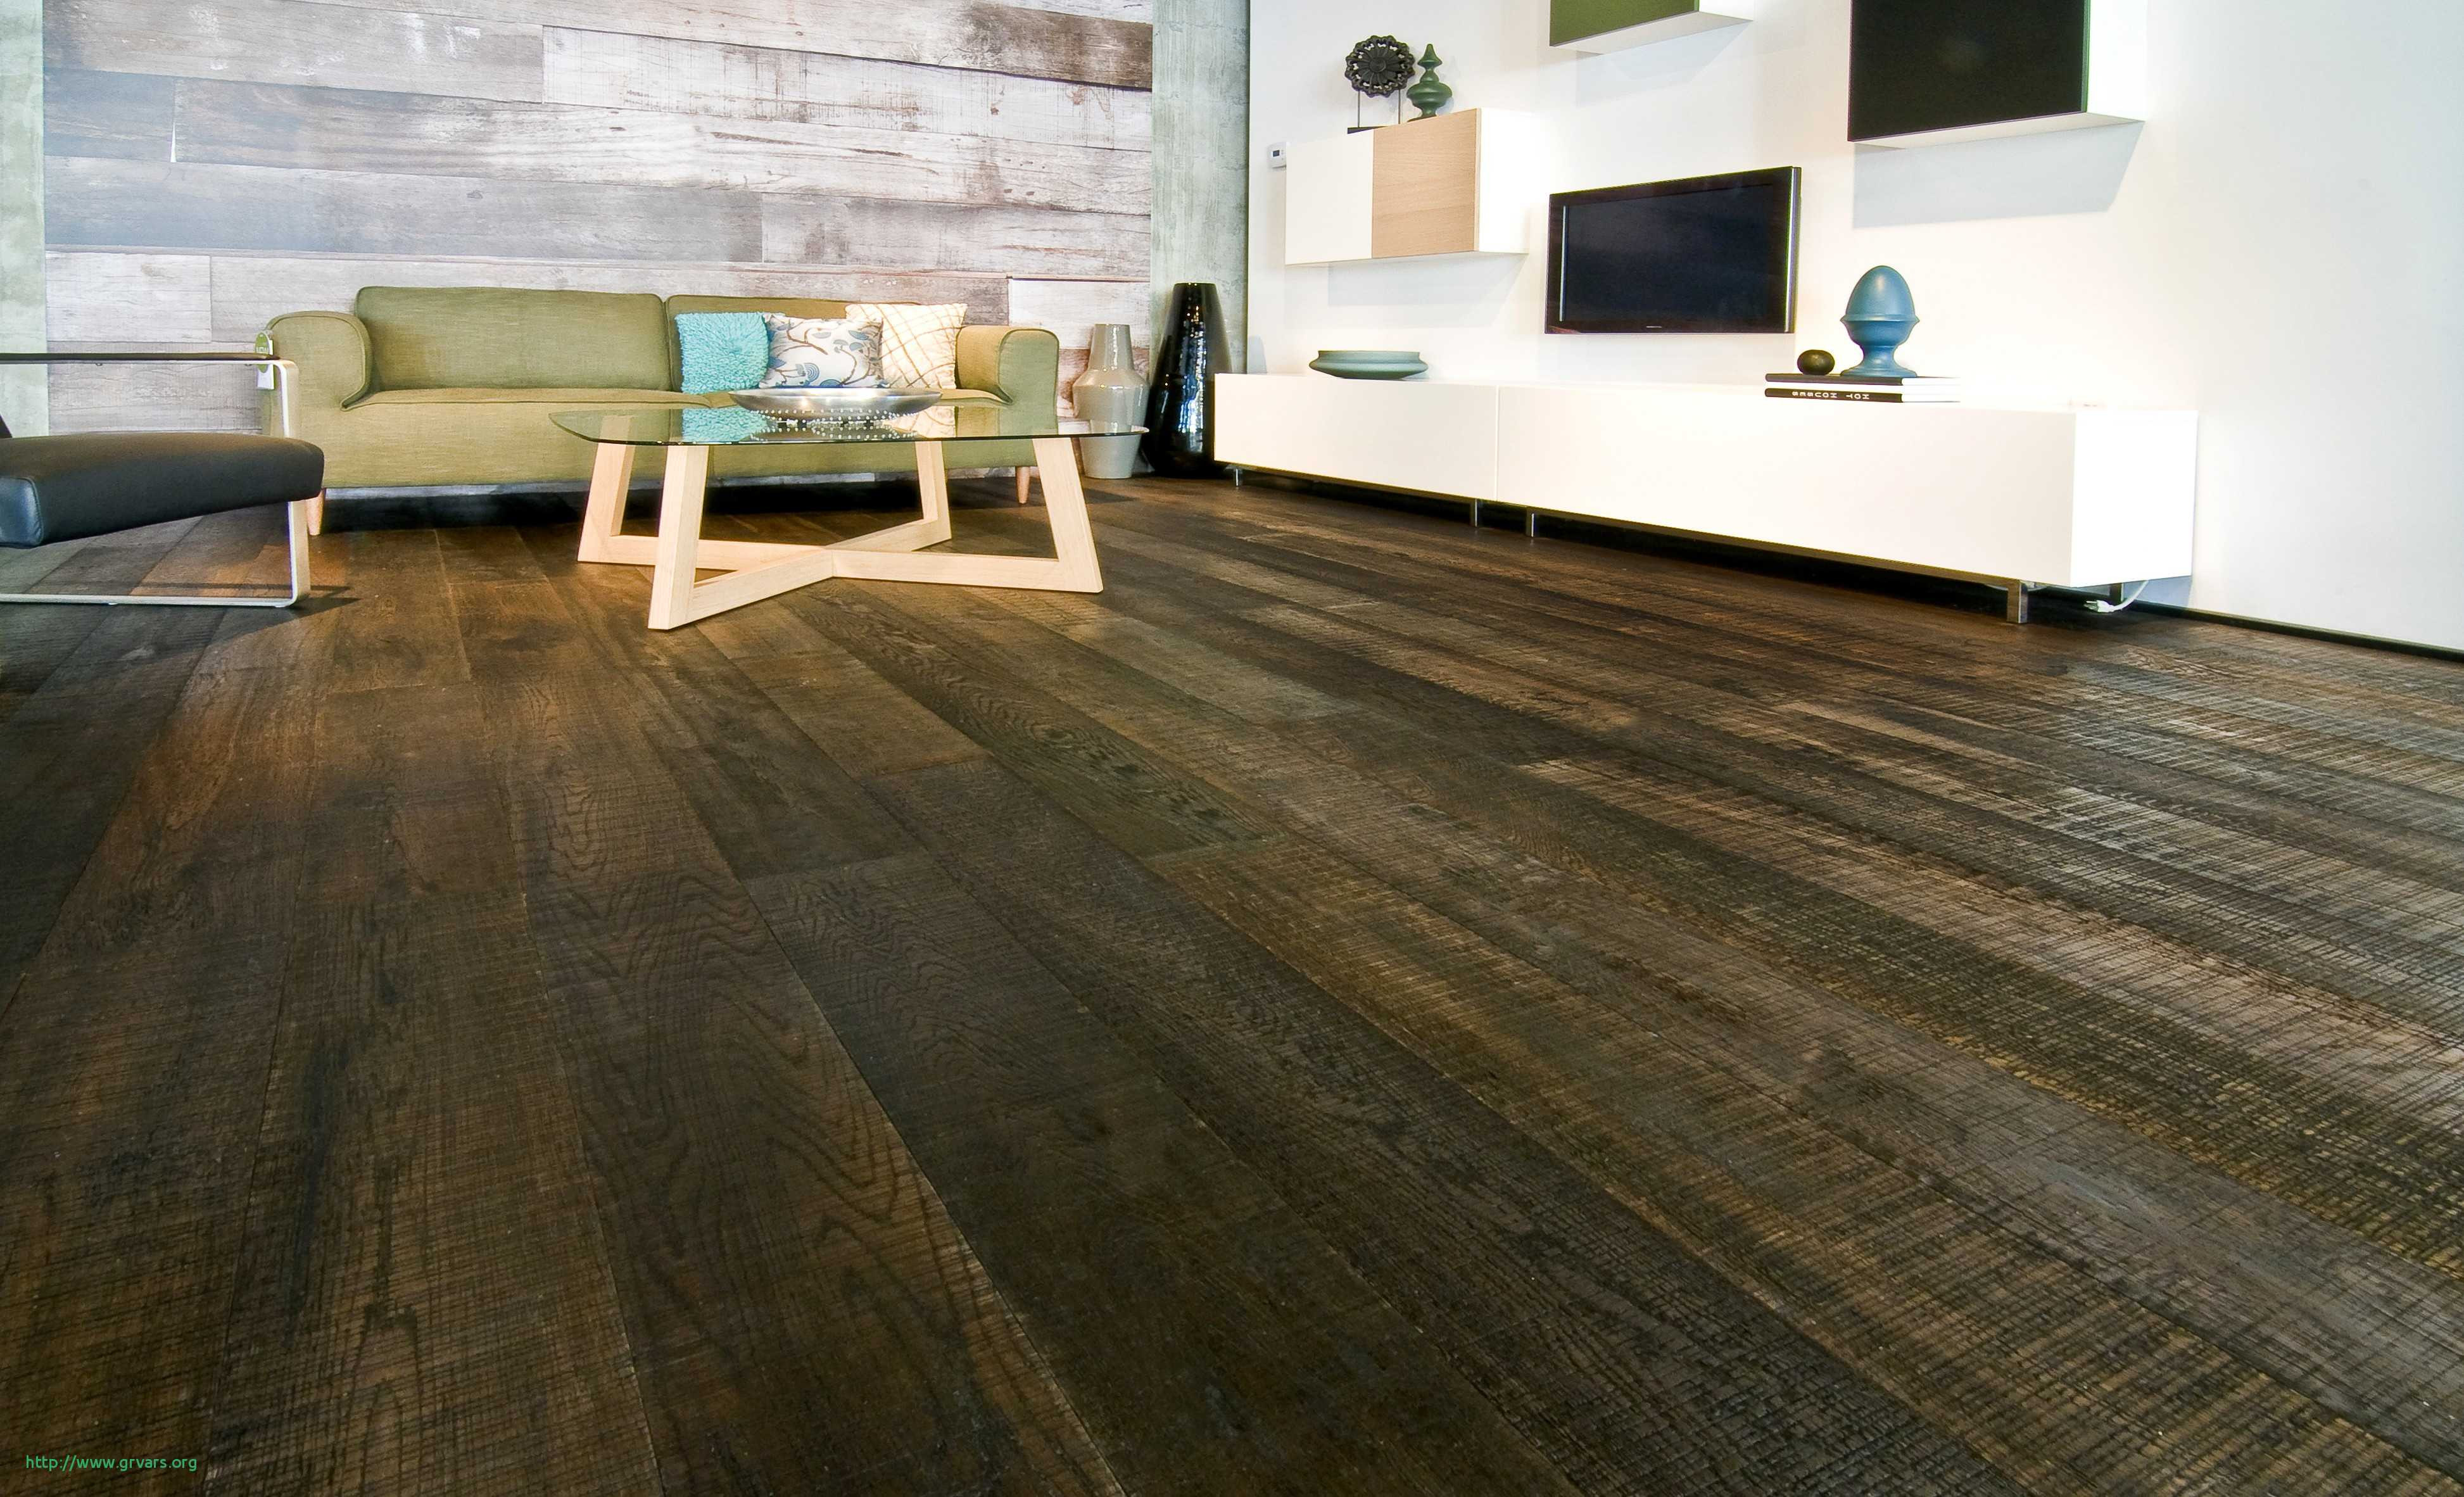 discount hardwood flooring austin tx of 15 beau best place for hardwood flooring ideas blog pertaining to acacia wood flooring where to buy hardwood flooring inspirational 0d grace place barnegat